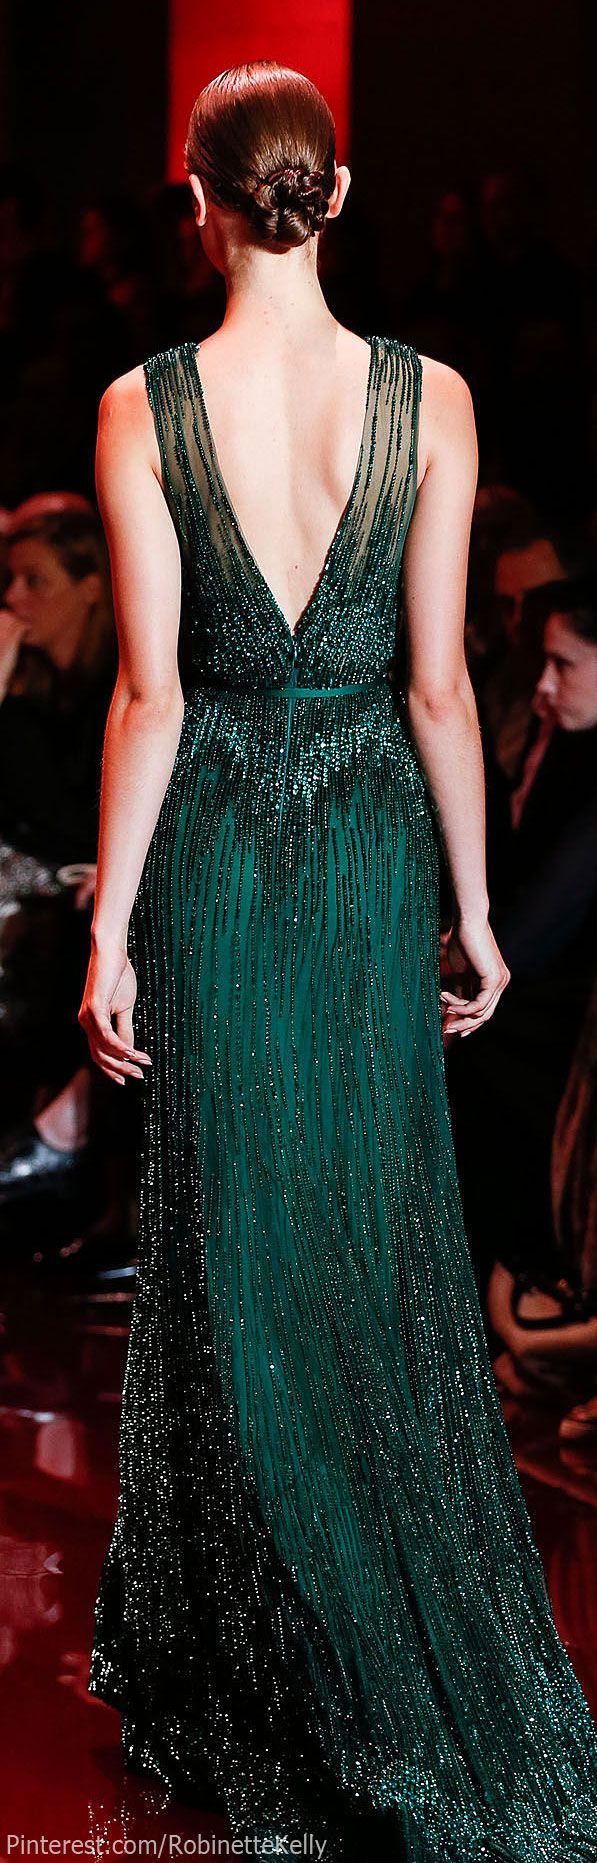 Elie Saab, f/w 2013 | Couture.